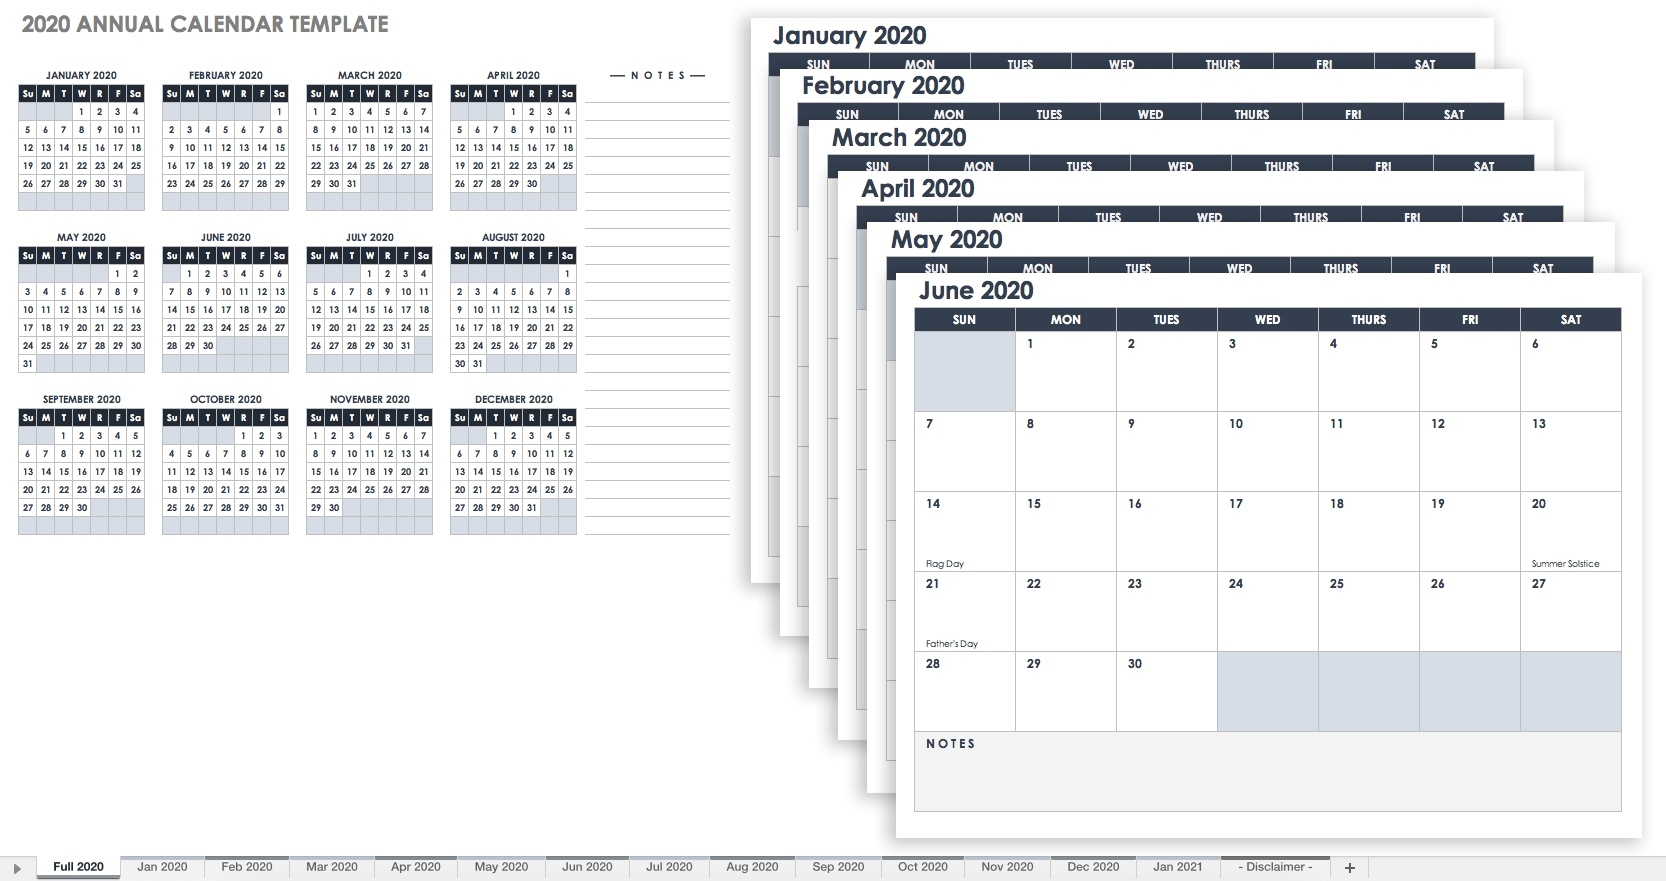 Weekly Calendar 2020 Template Students 7 Days A Week 7 Day Router Blank